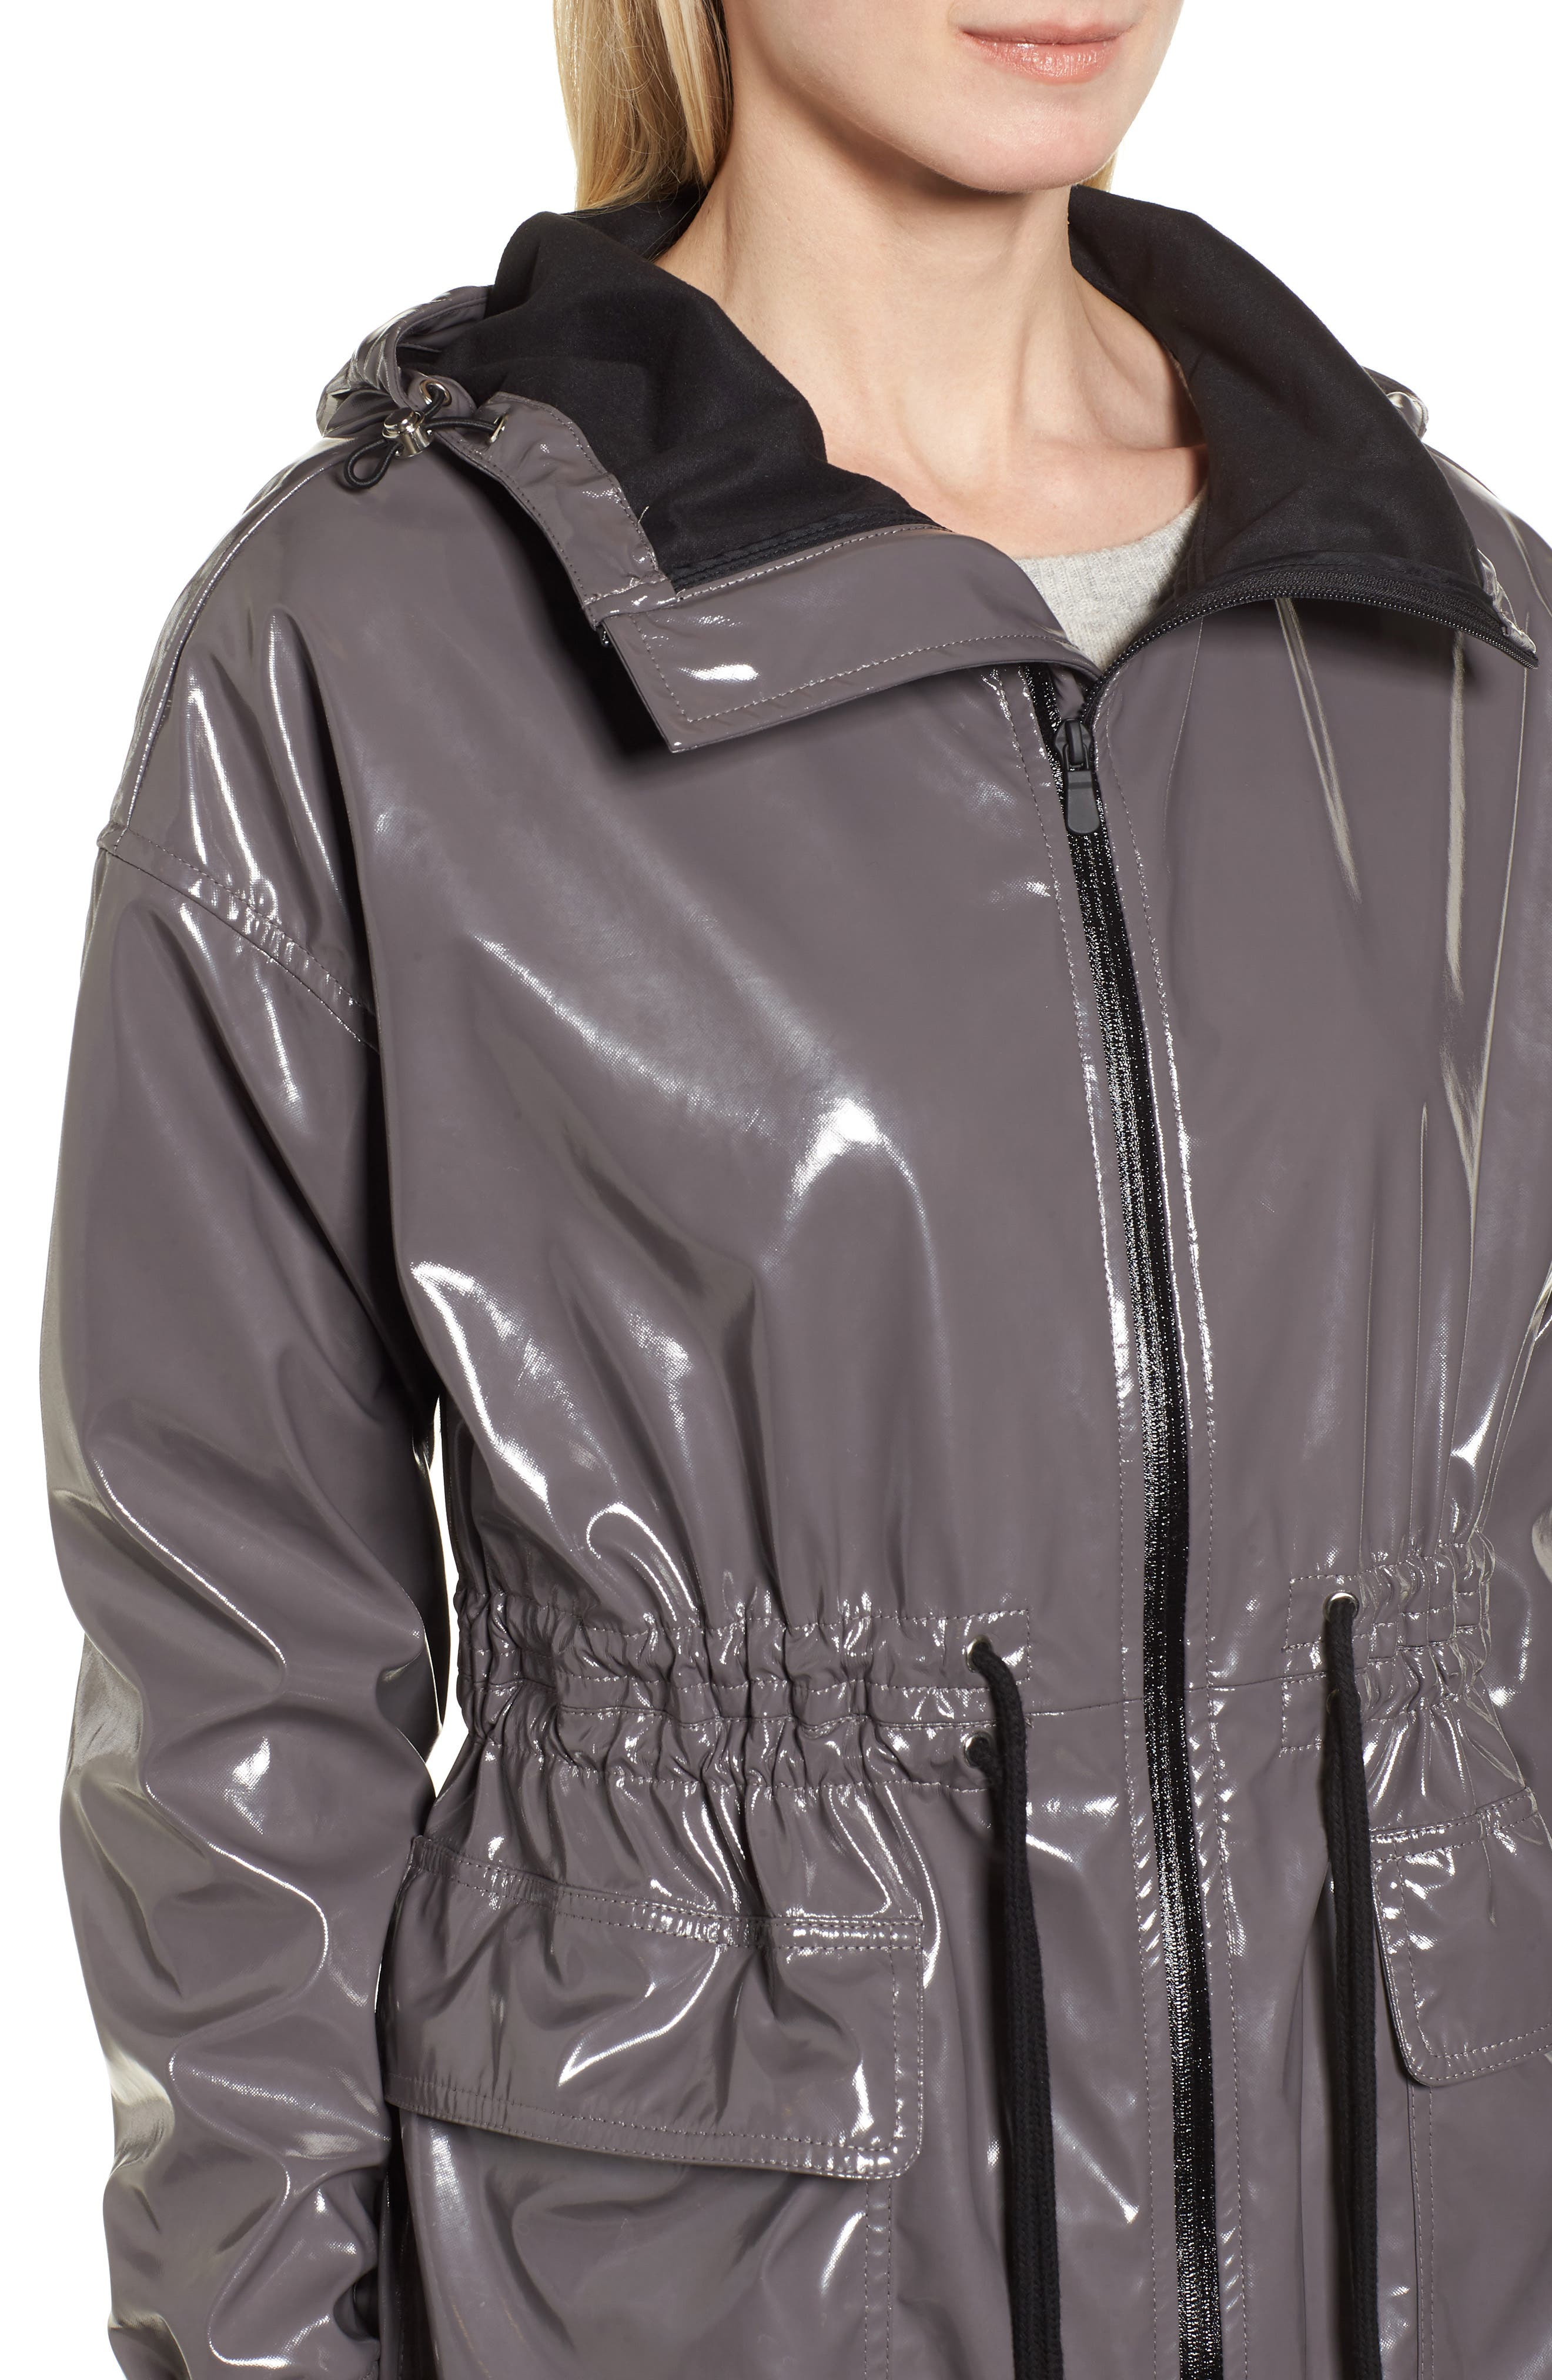 Fawn Patent Hooded Raincoat,                             Alternate thumbnail 4, color,                             020